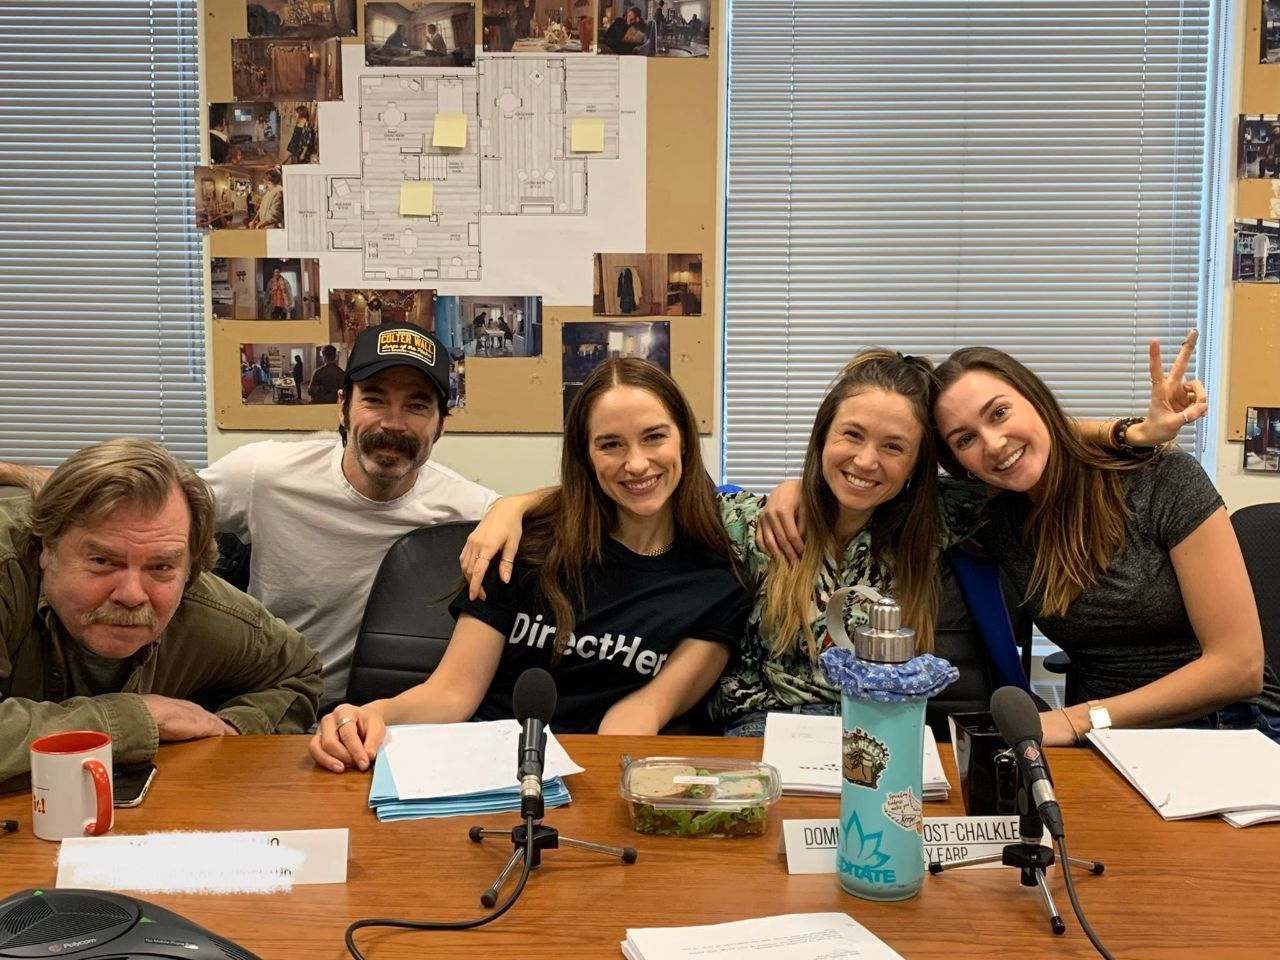 wynonna-earp-cast-season-4-table-read